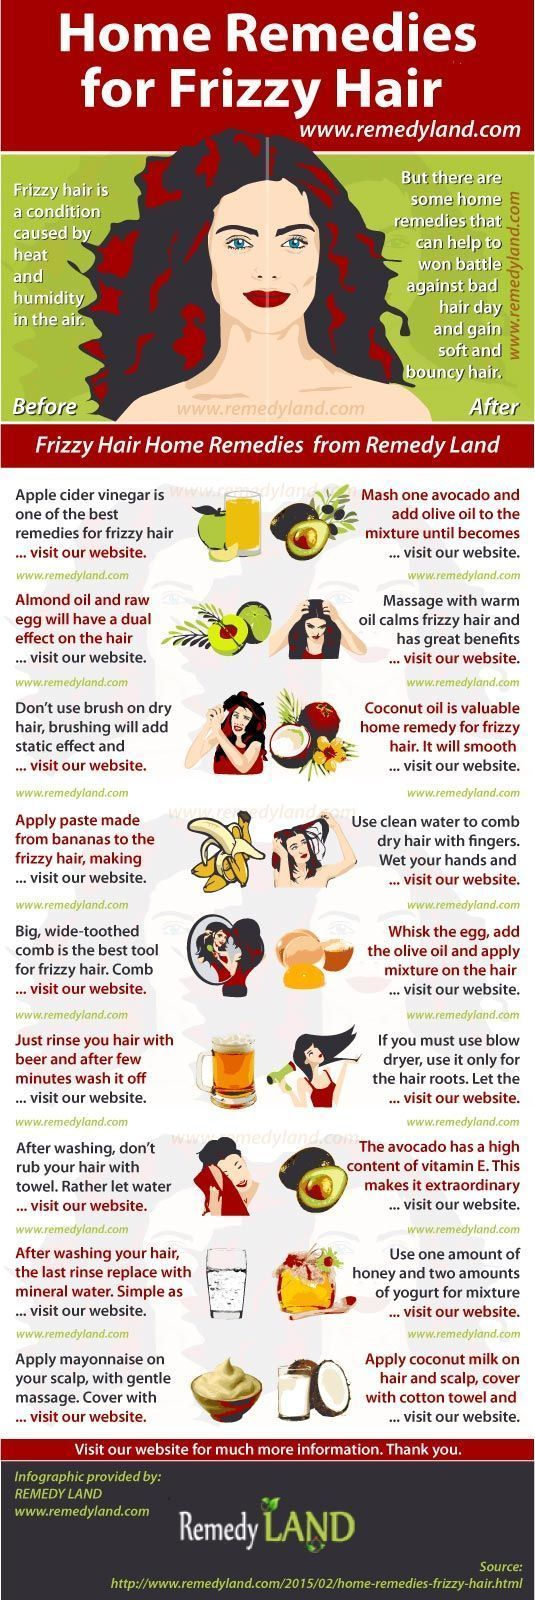 Frizzy Hair Home Remedies for Managing a Dry, Brittle